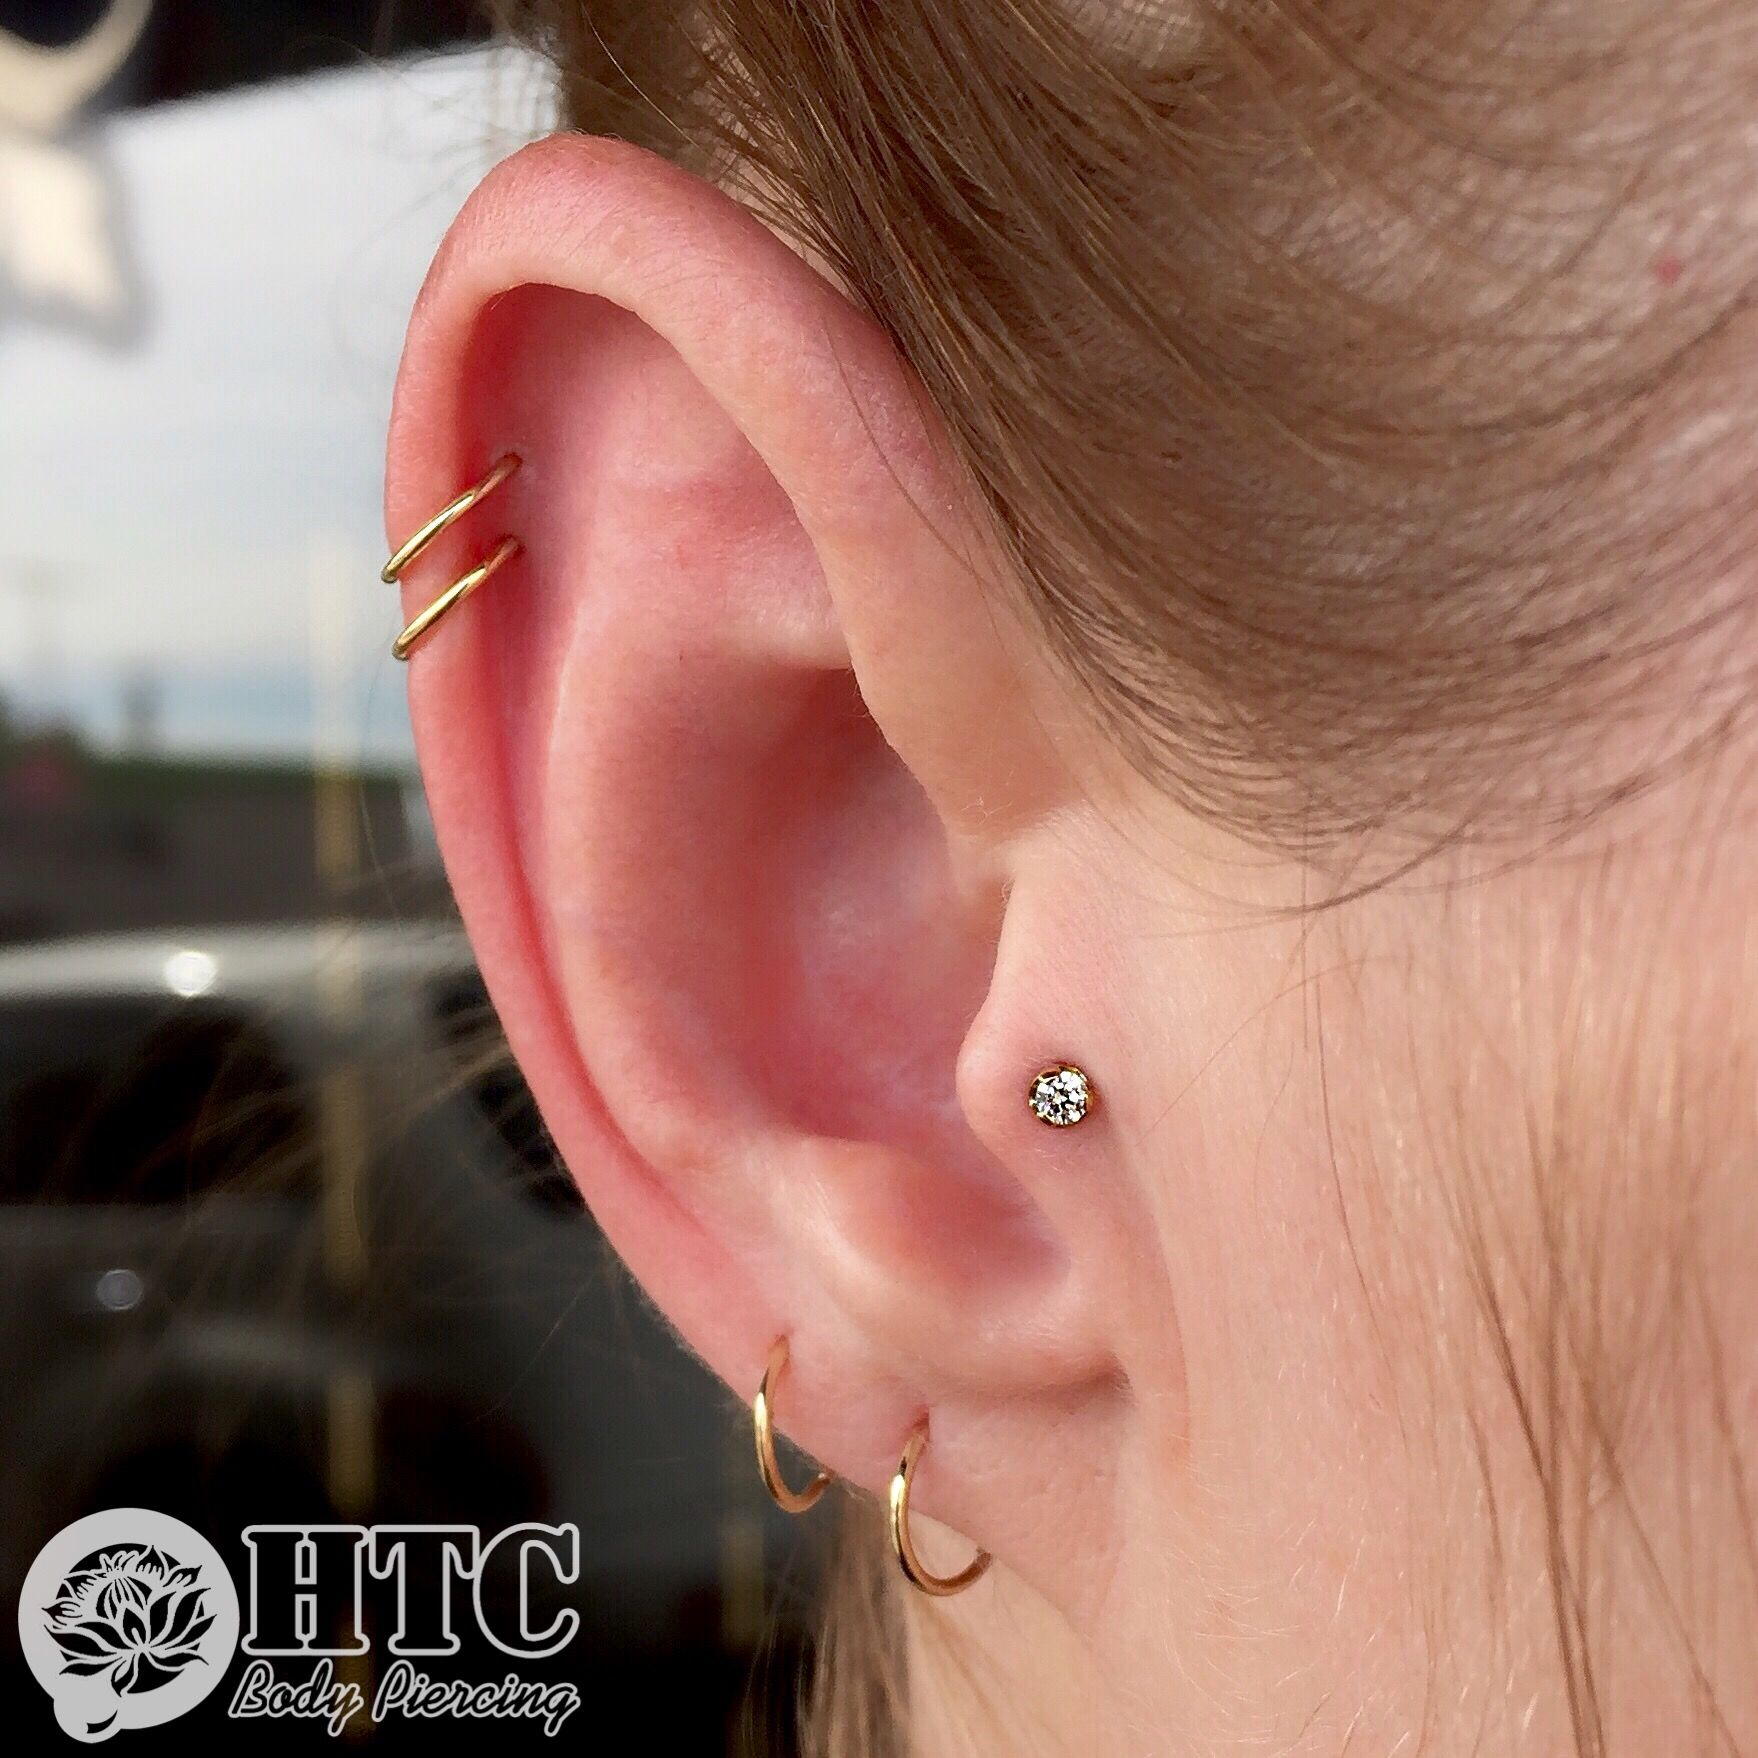 Piercing nose at home  Pin by Marilyn MenaScott on Ear Styling u Piercings by Marilyn Mena